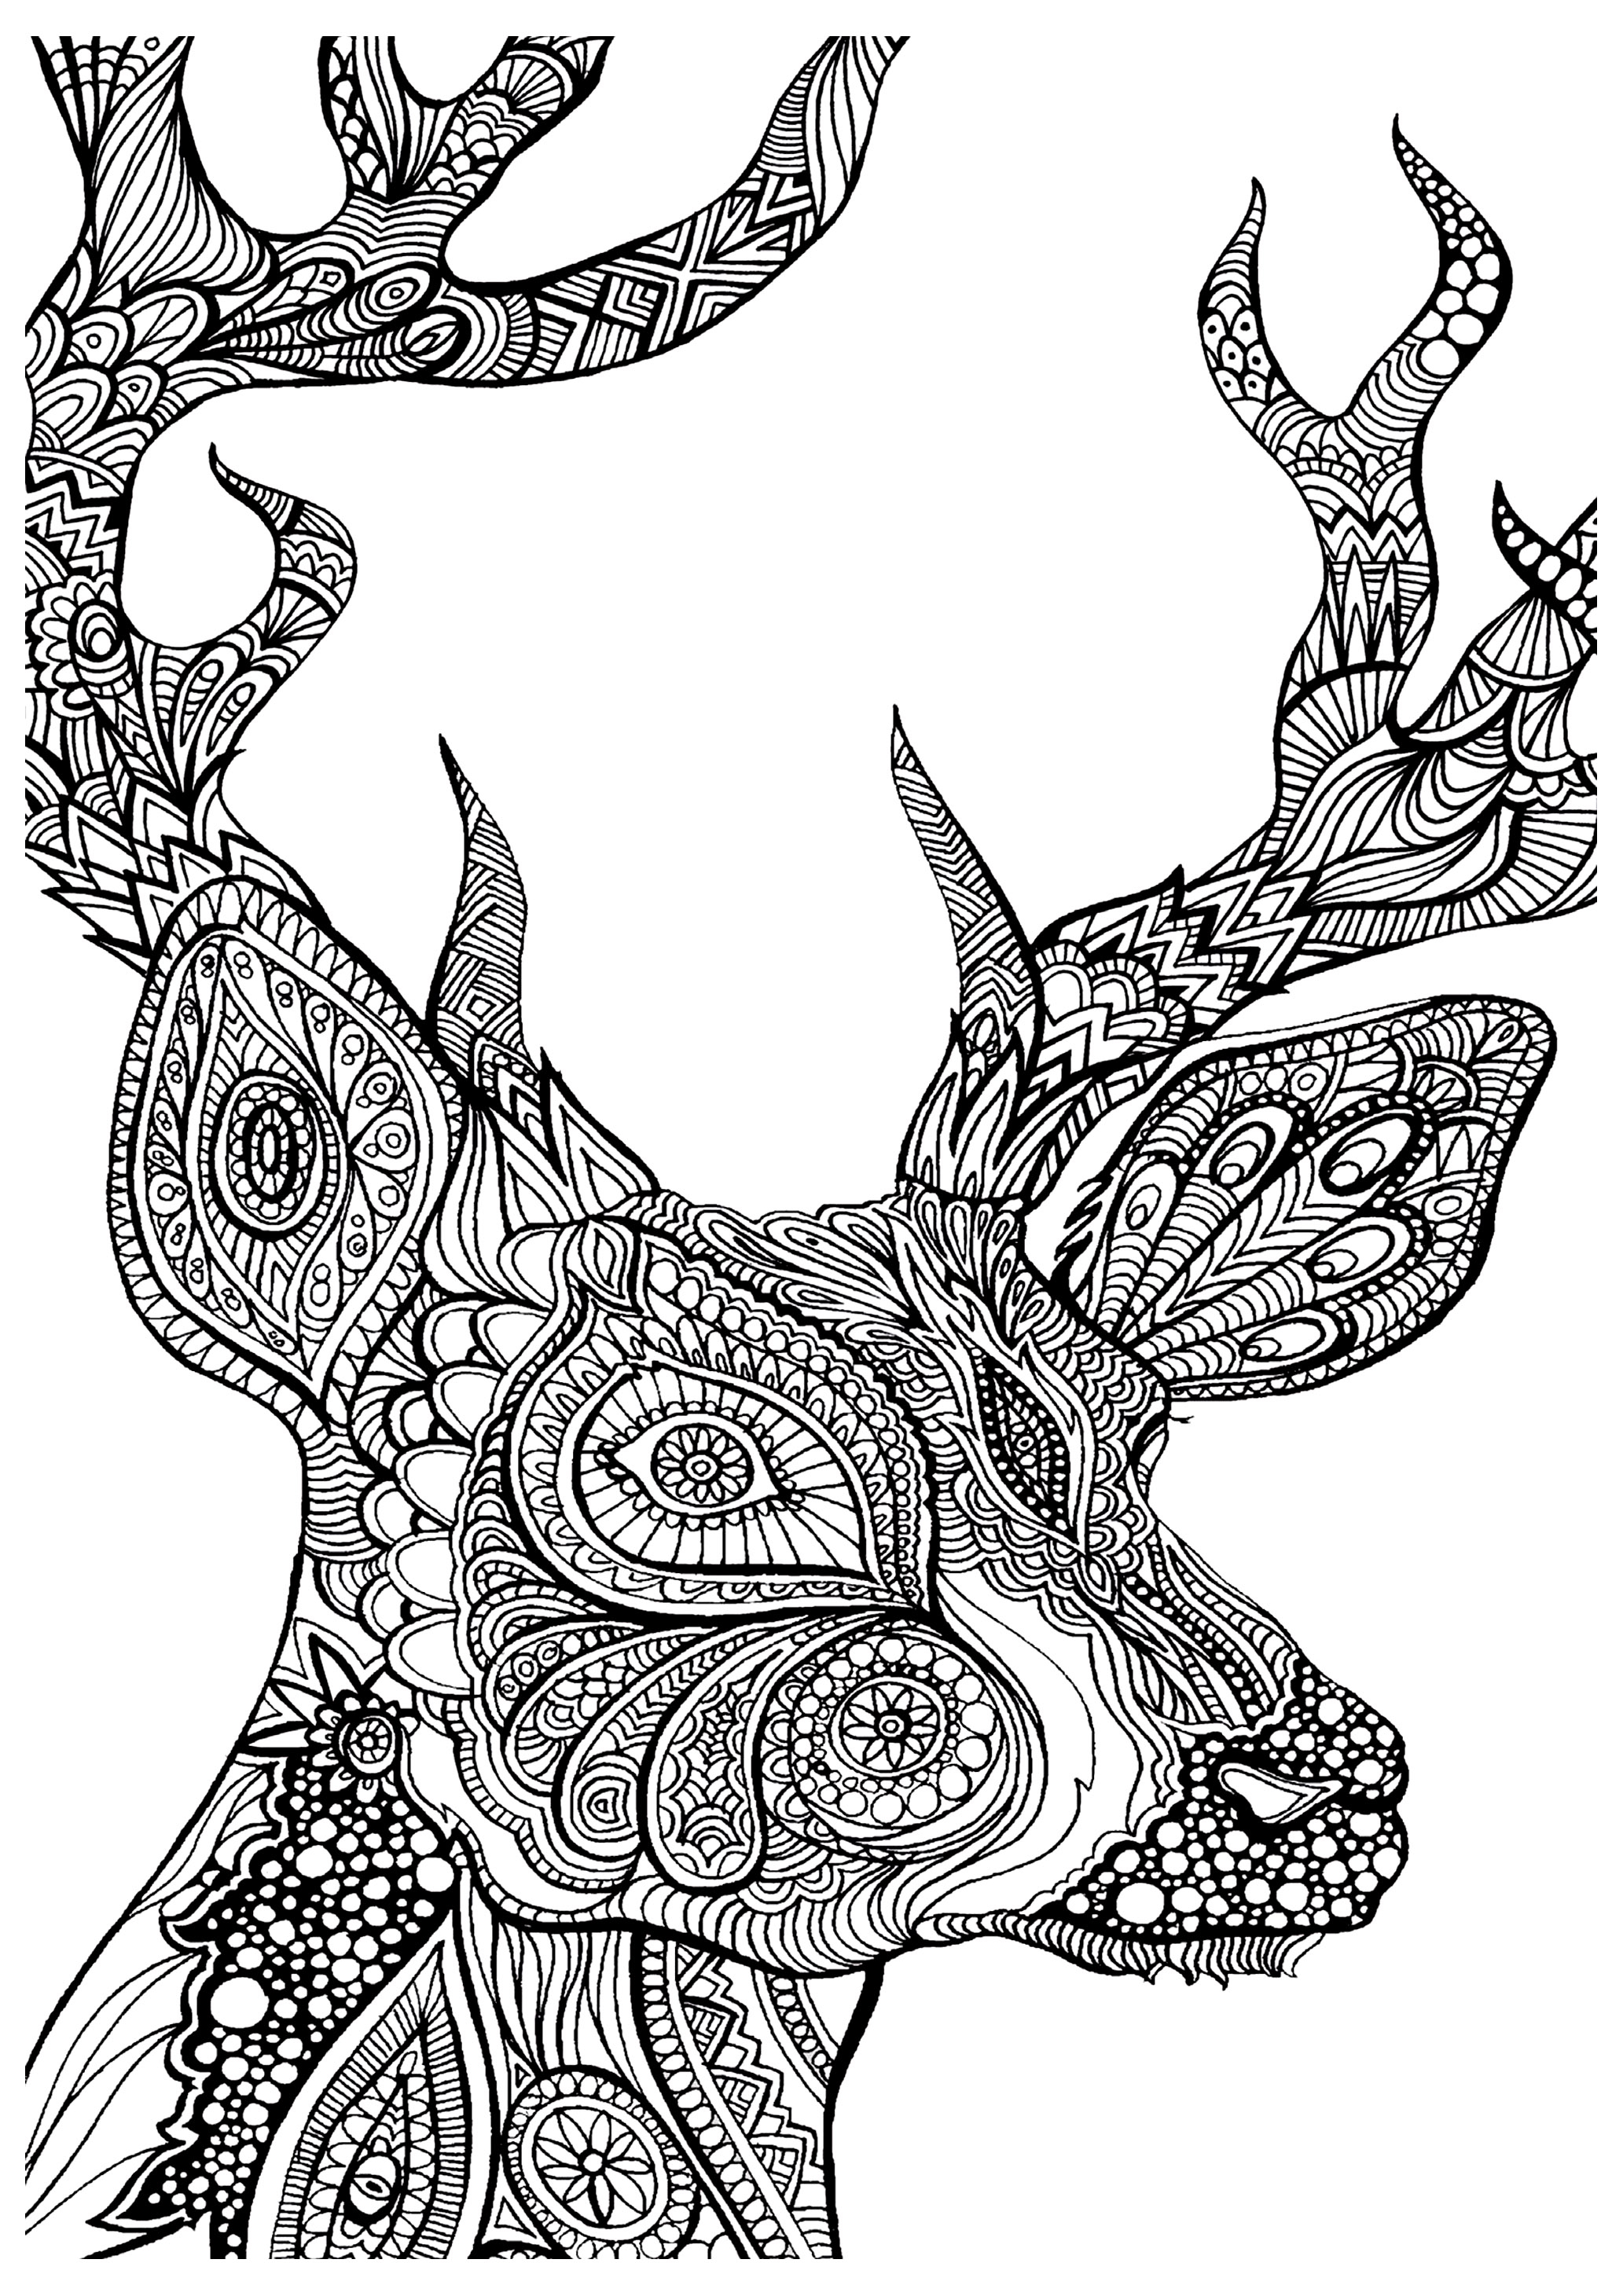 2065x2922 Printable Deer Coloring Pages Coloringstar Baby Sheets Animal